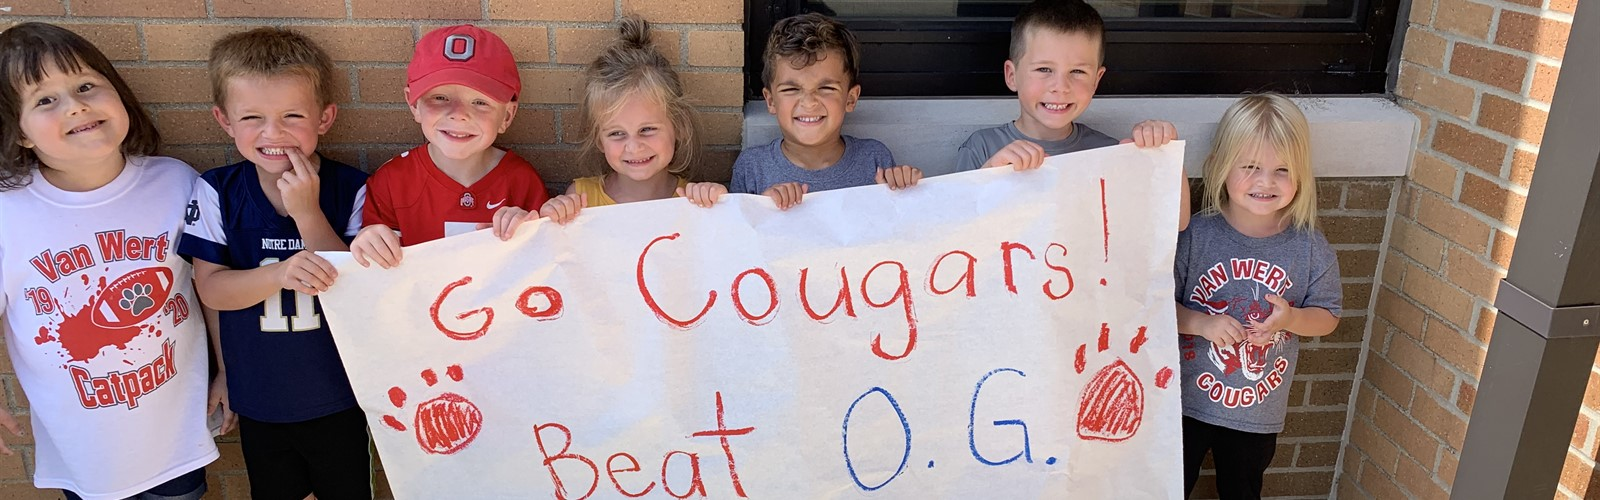 "Preschoolers holding ""Go Cougars"" banner"